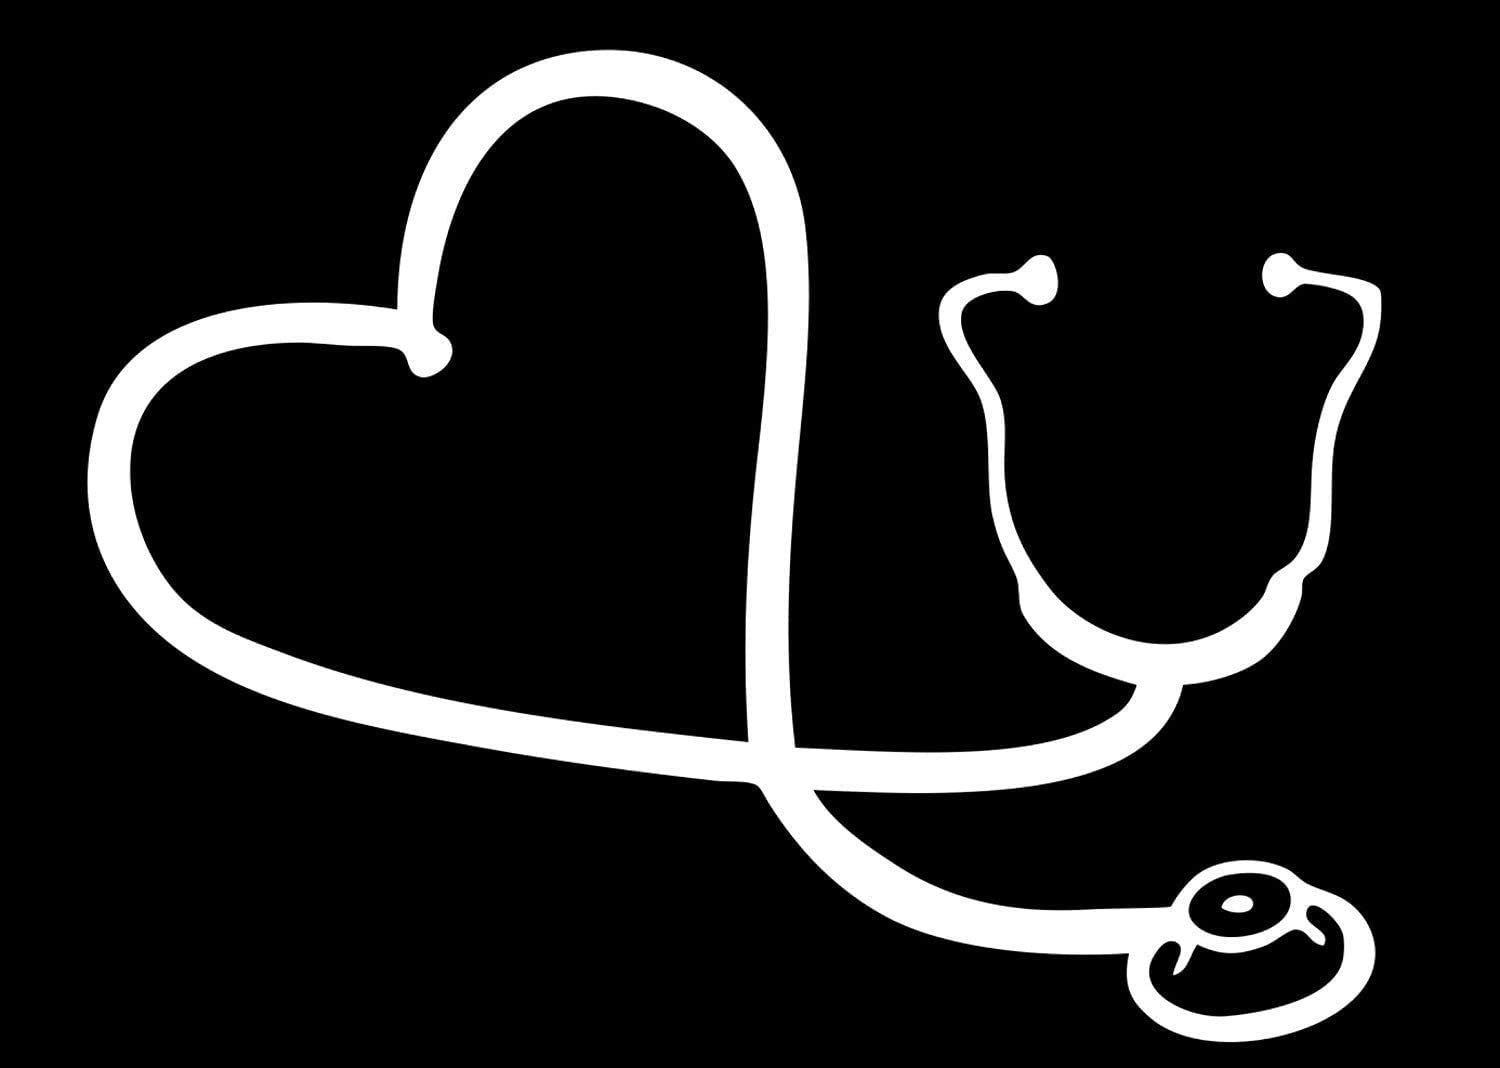 "BKS- Heart Stethoscope Car Window Stickers Vinyl Decal 6"" White Styling Decoration for Car Accessories Laptop Wall Tool Box Removeable Motorcycle Bumper"